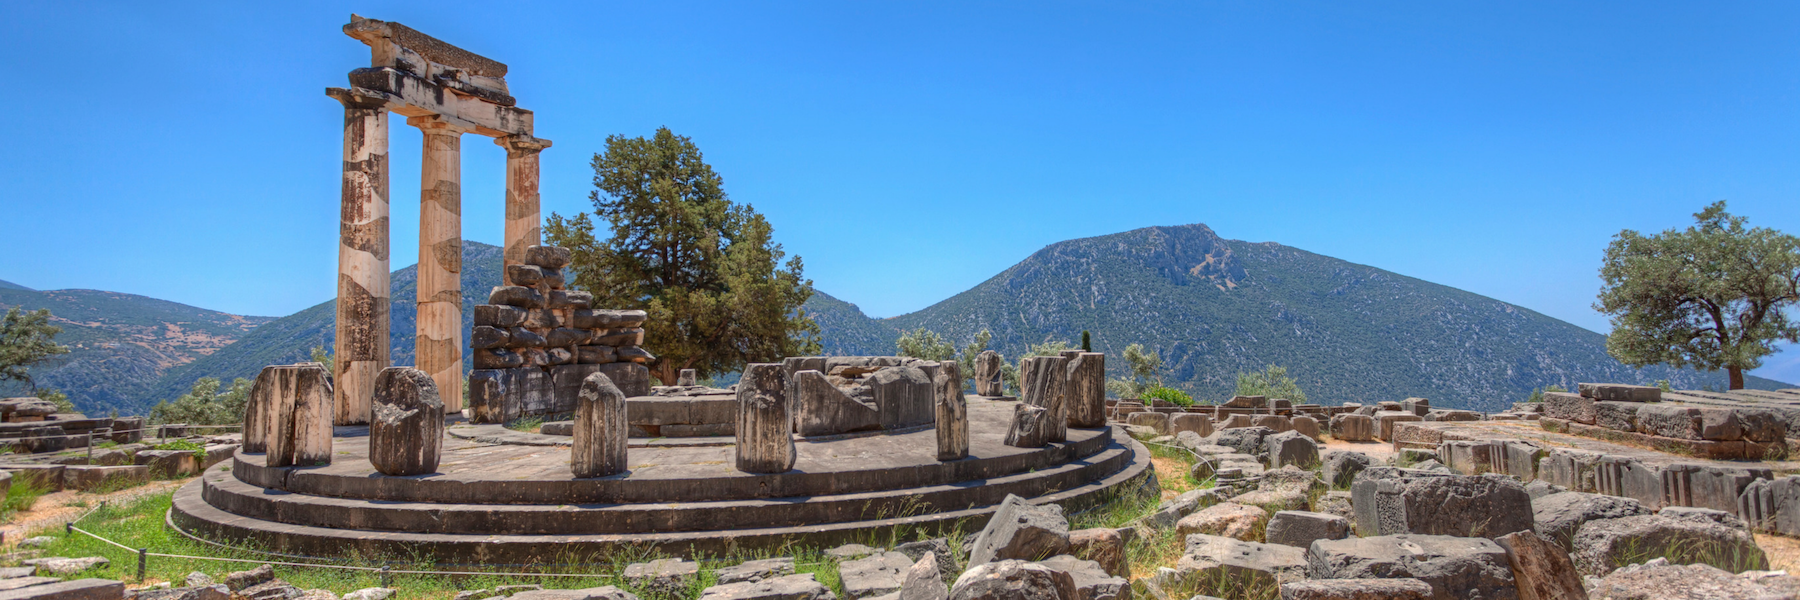 Tholos at Delphi, Unforgettable Cruise